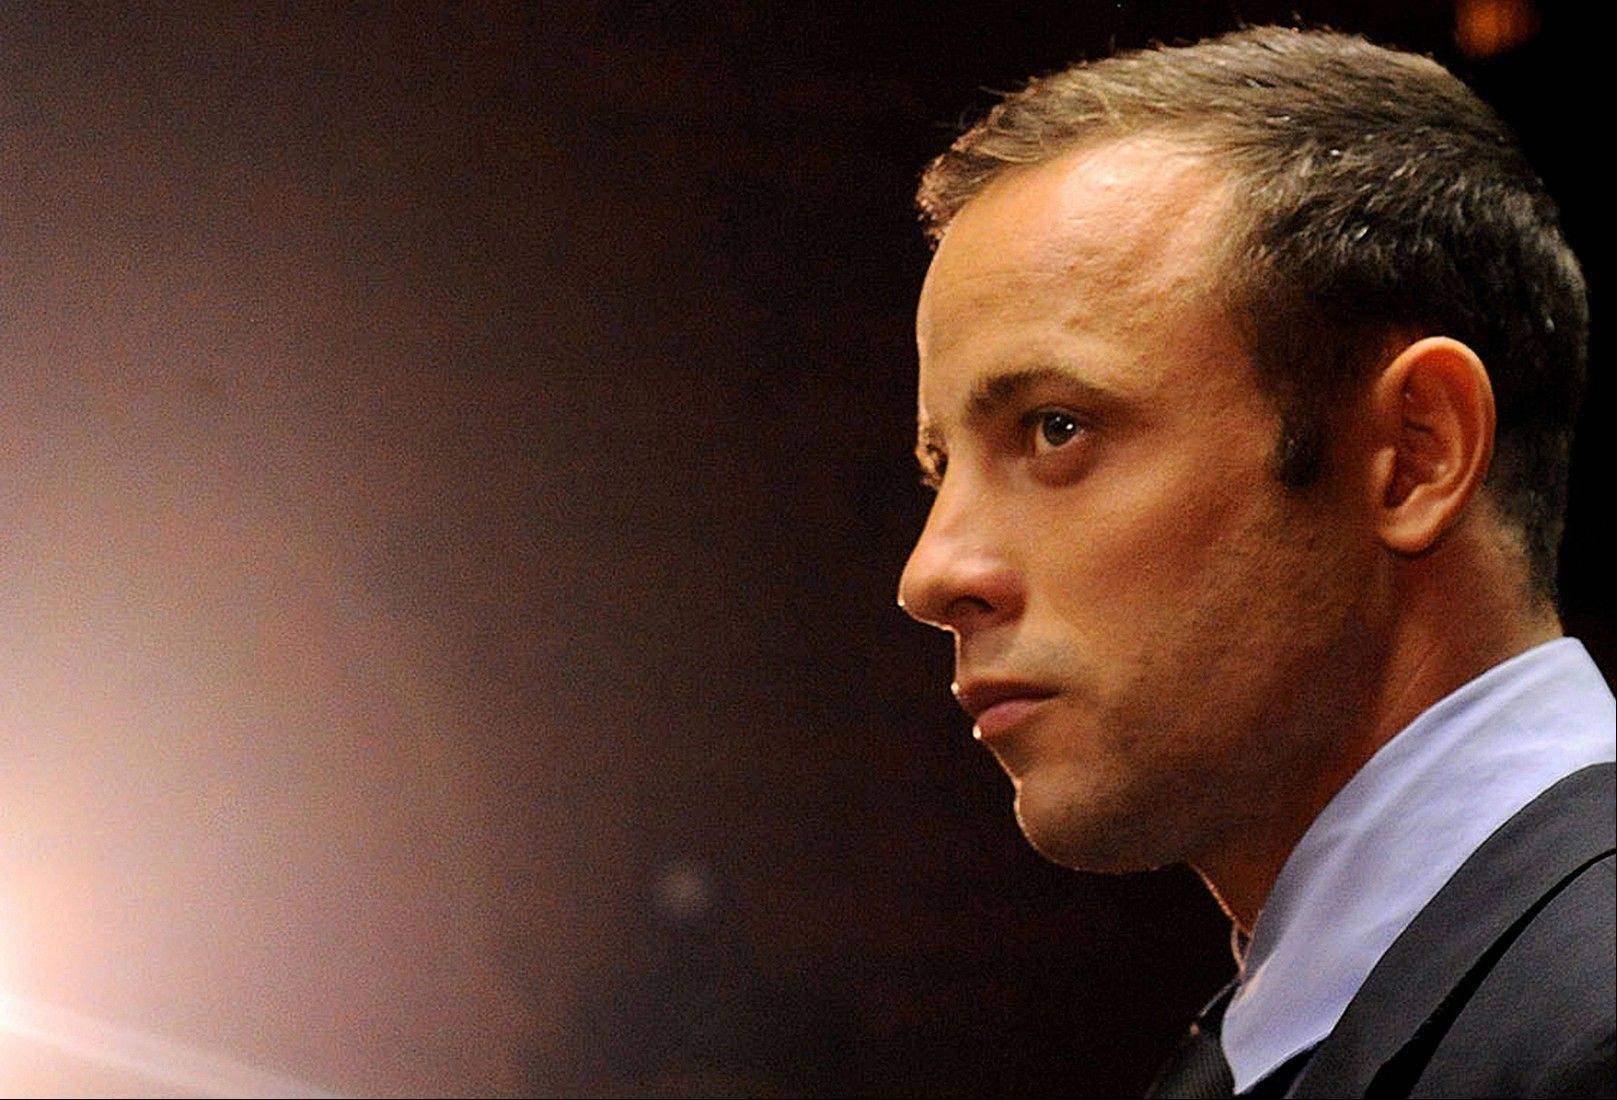 Prosecutors say Oscar Pistorius will be indicted for premeditated murder on Monday and he will go on trial in early 2014 for shooting dead his girlfriend.